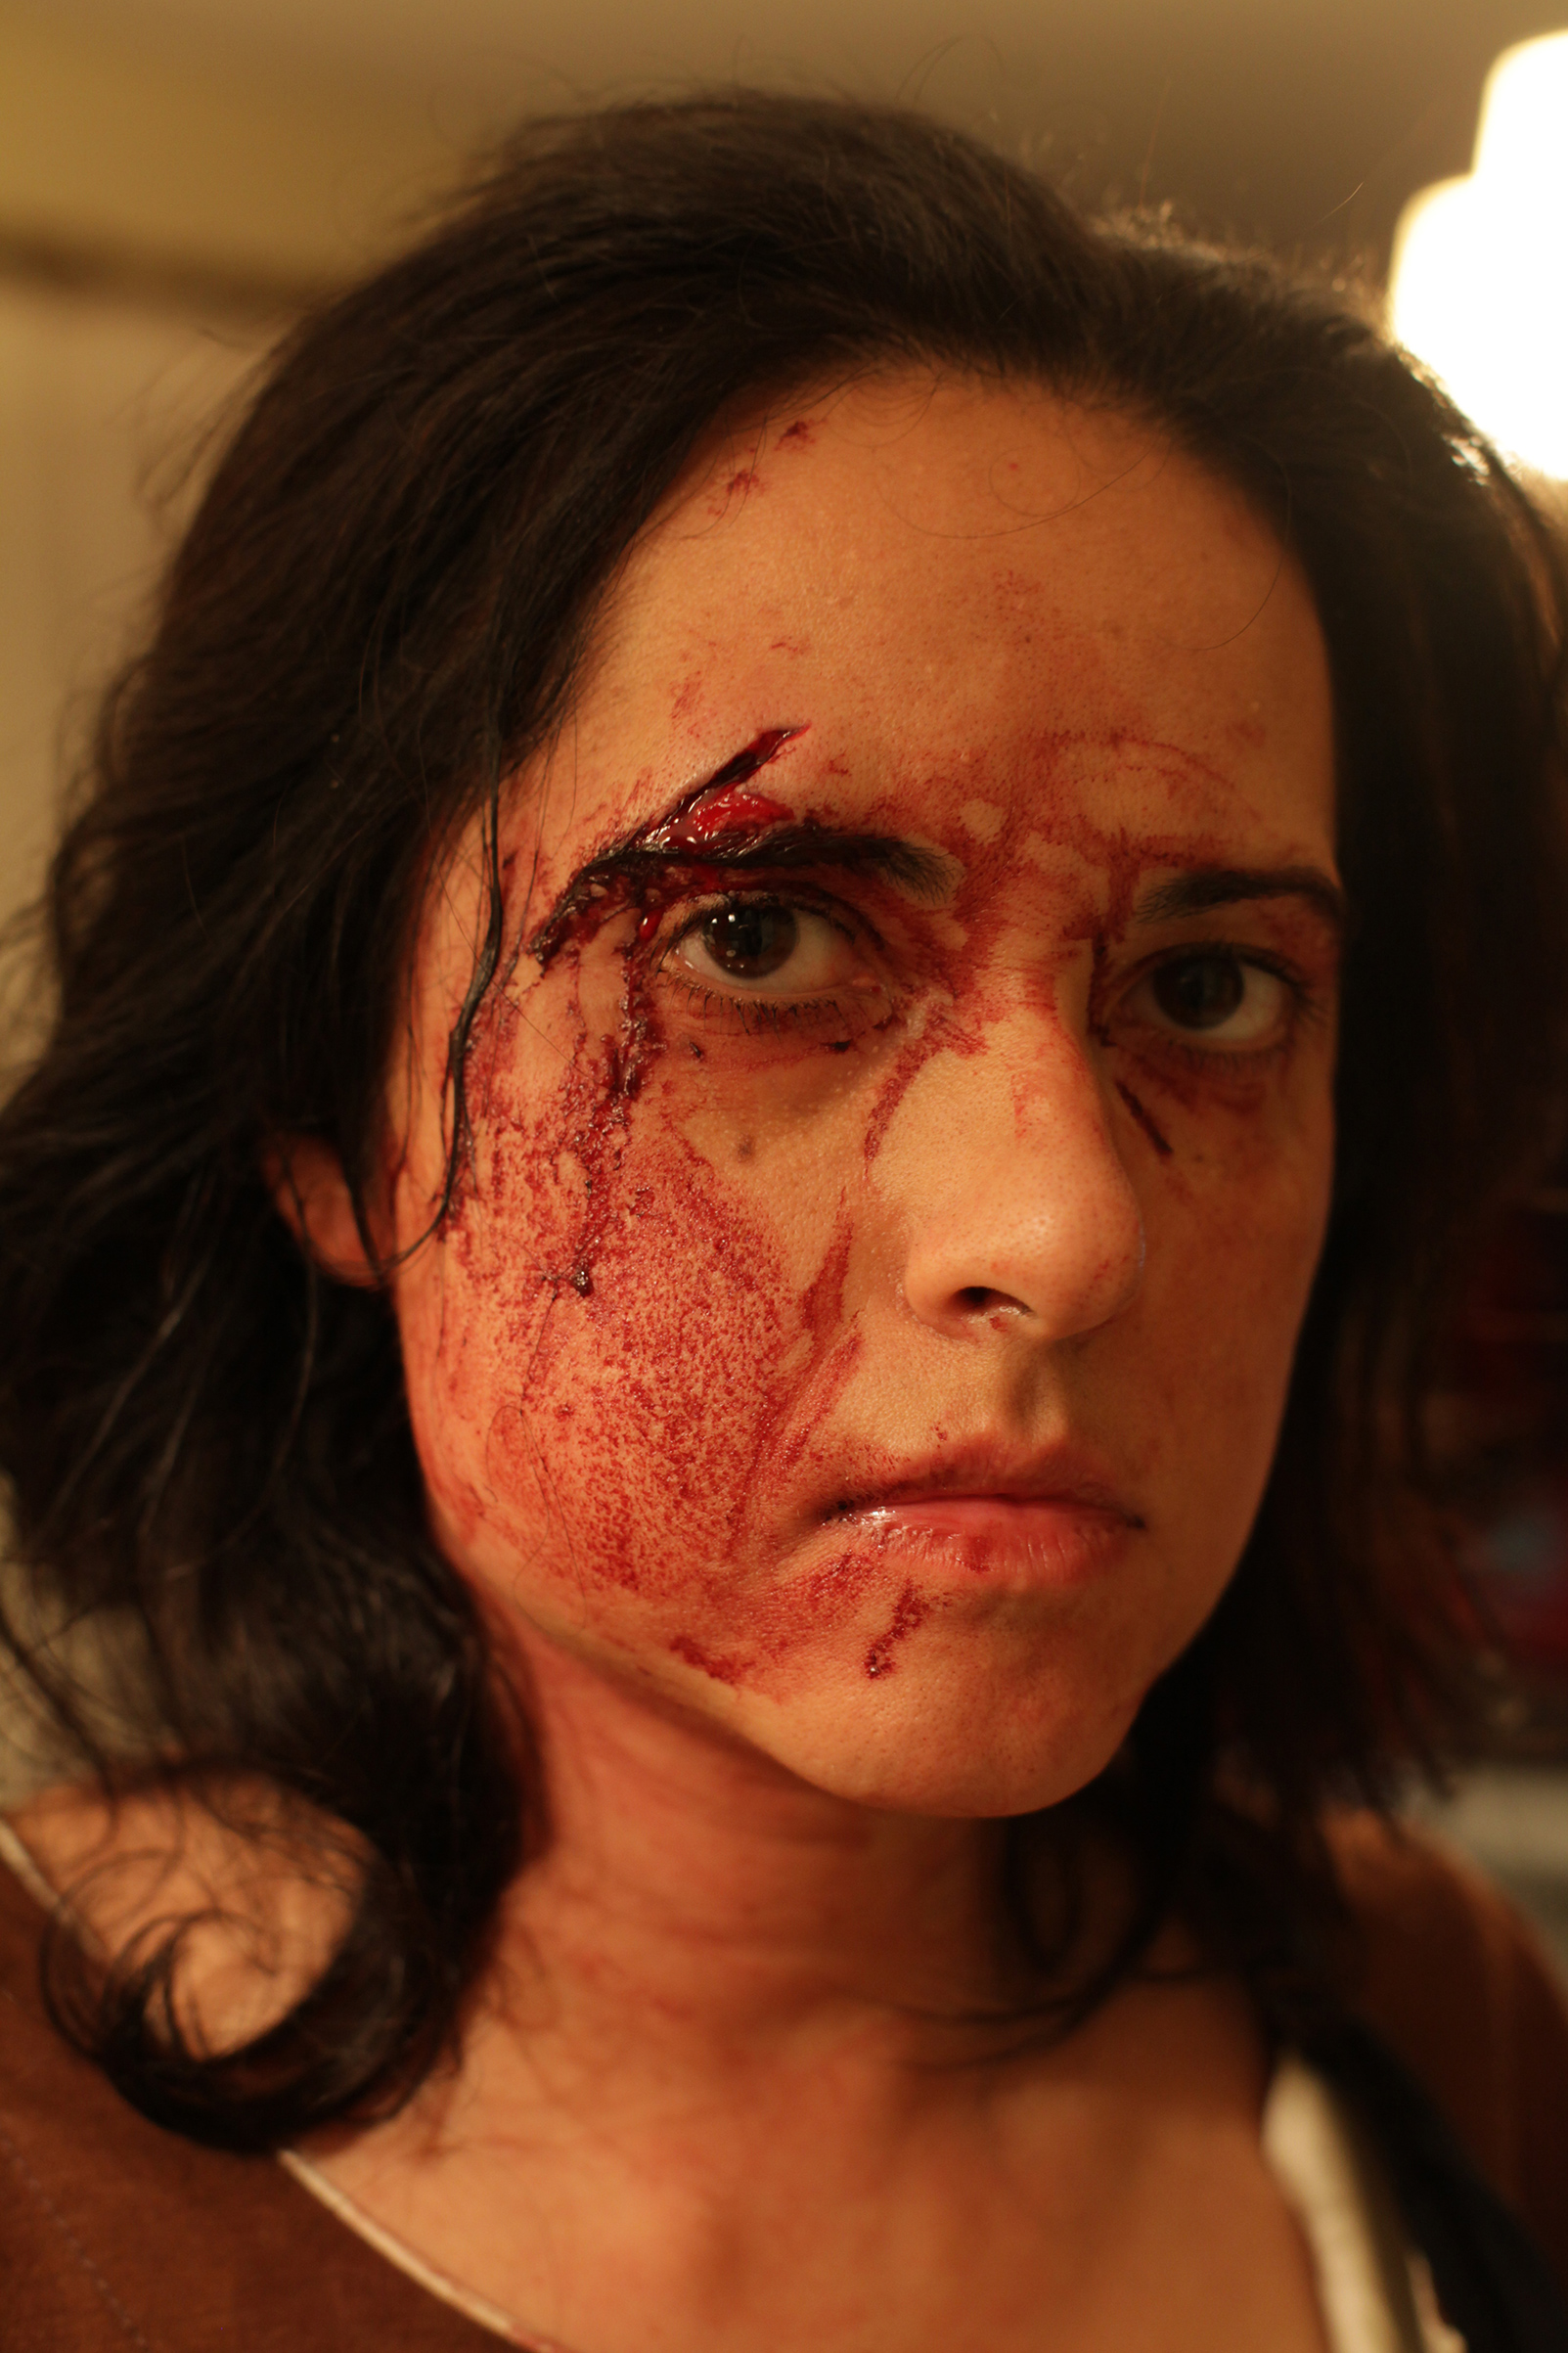 A self portrait by photojournalist Rena Effendi taken after an attack on March 9, 2012.